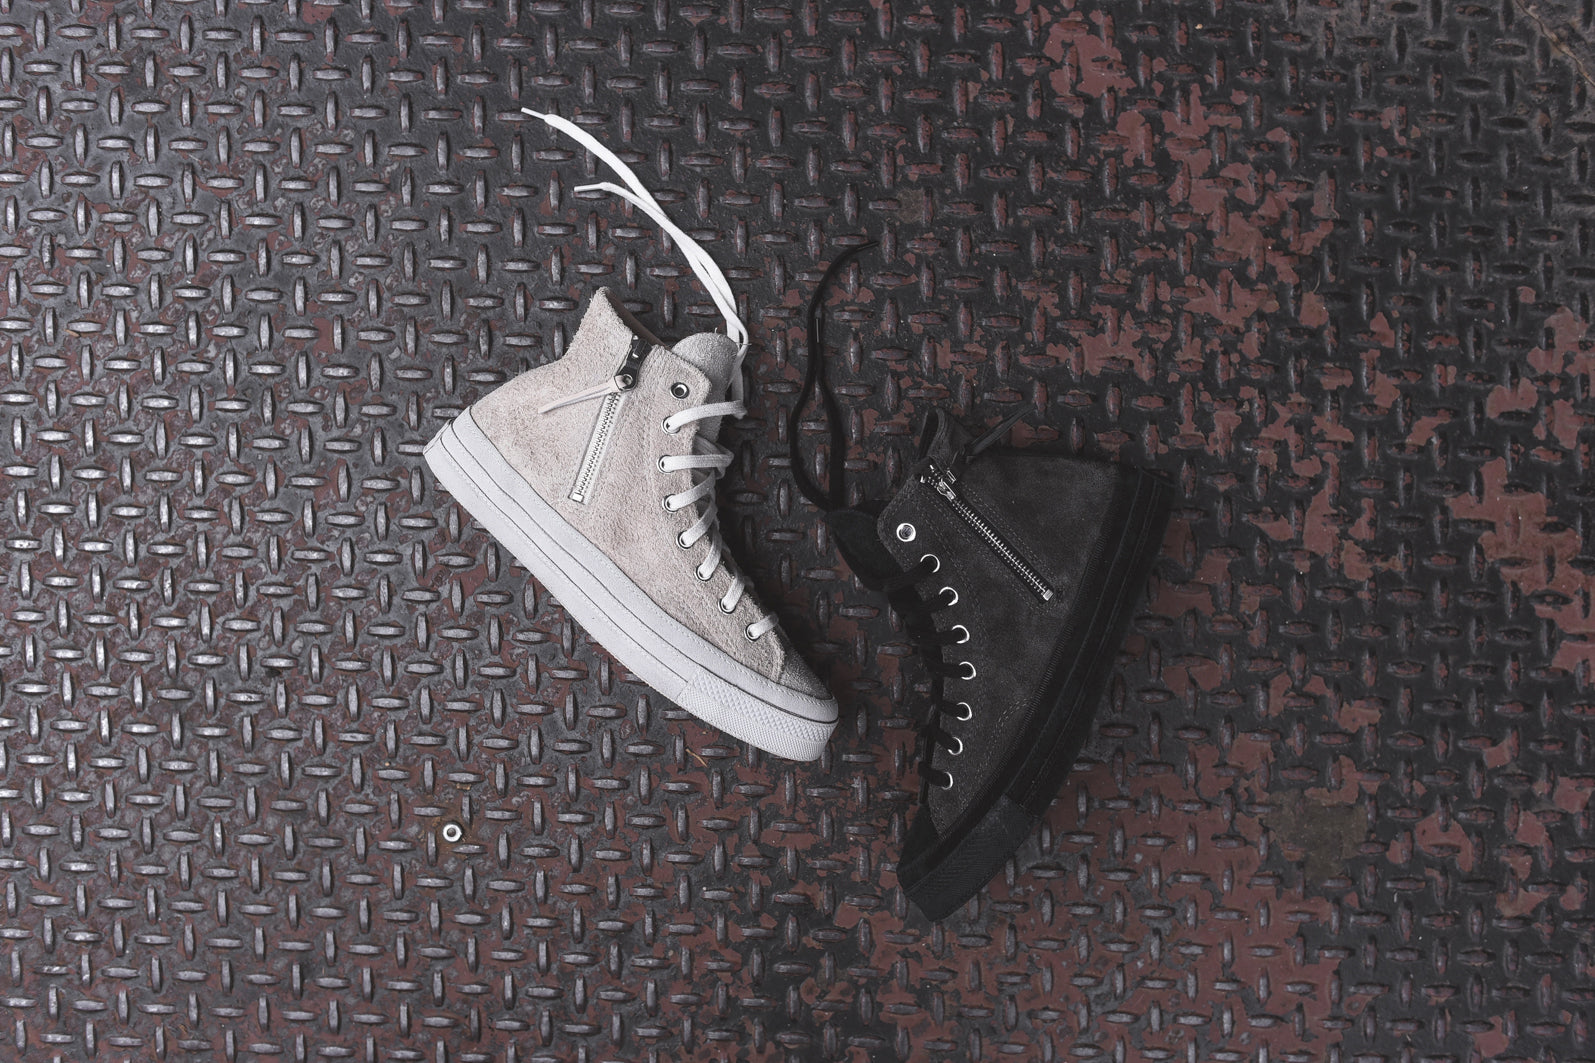 b72d0f2fa55396 Converse Chuck Taylor All Star Hi 1970 Zip - Vaporous Grey   Black ...